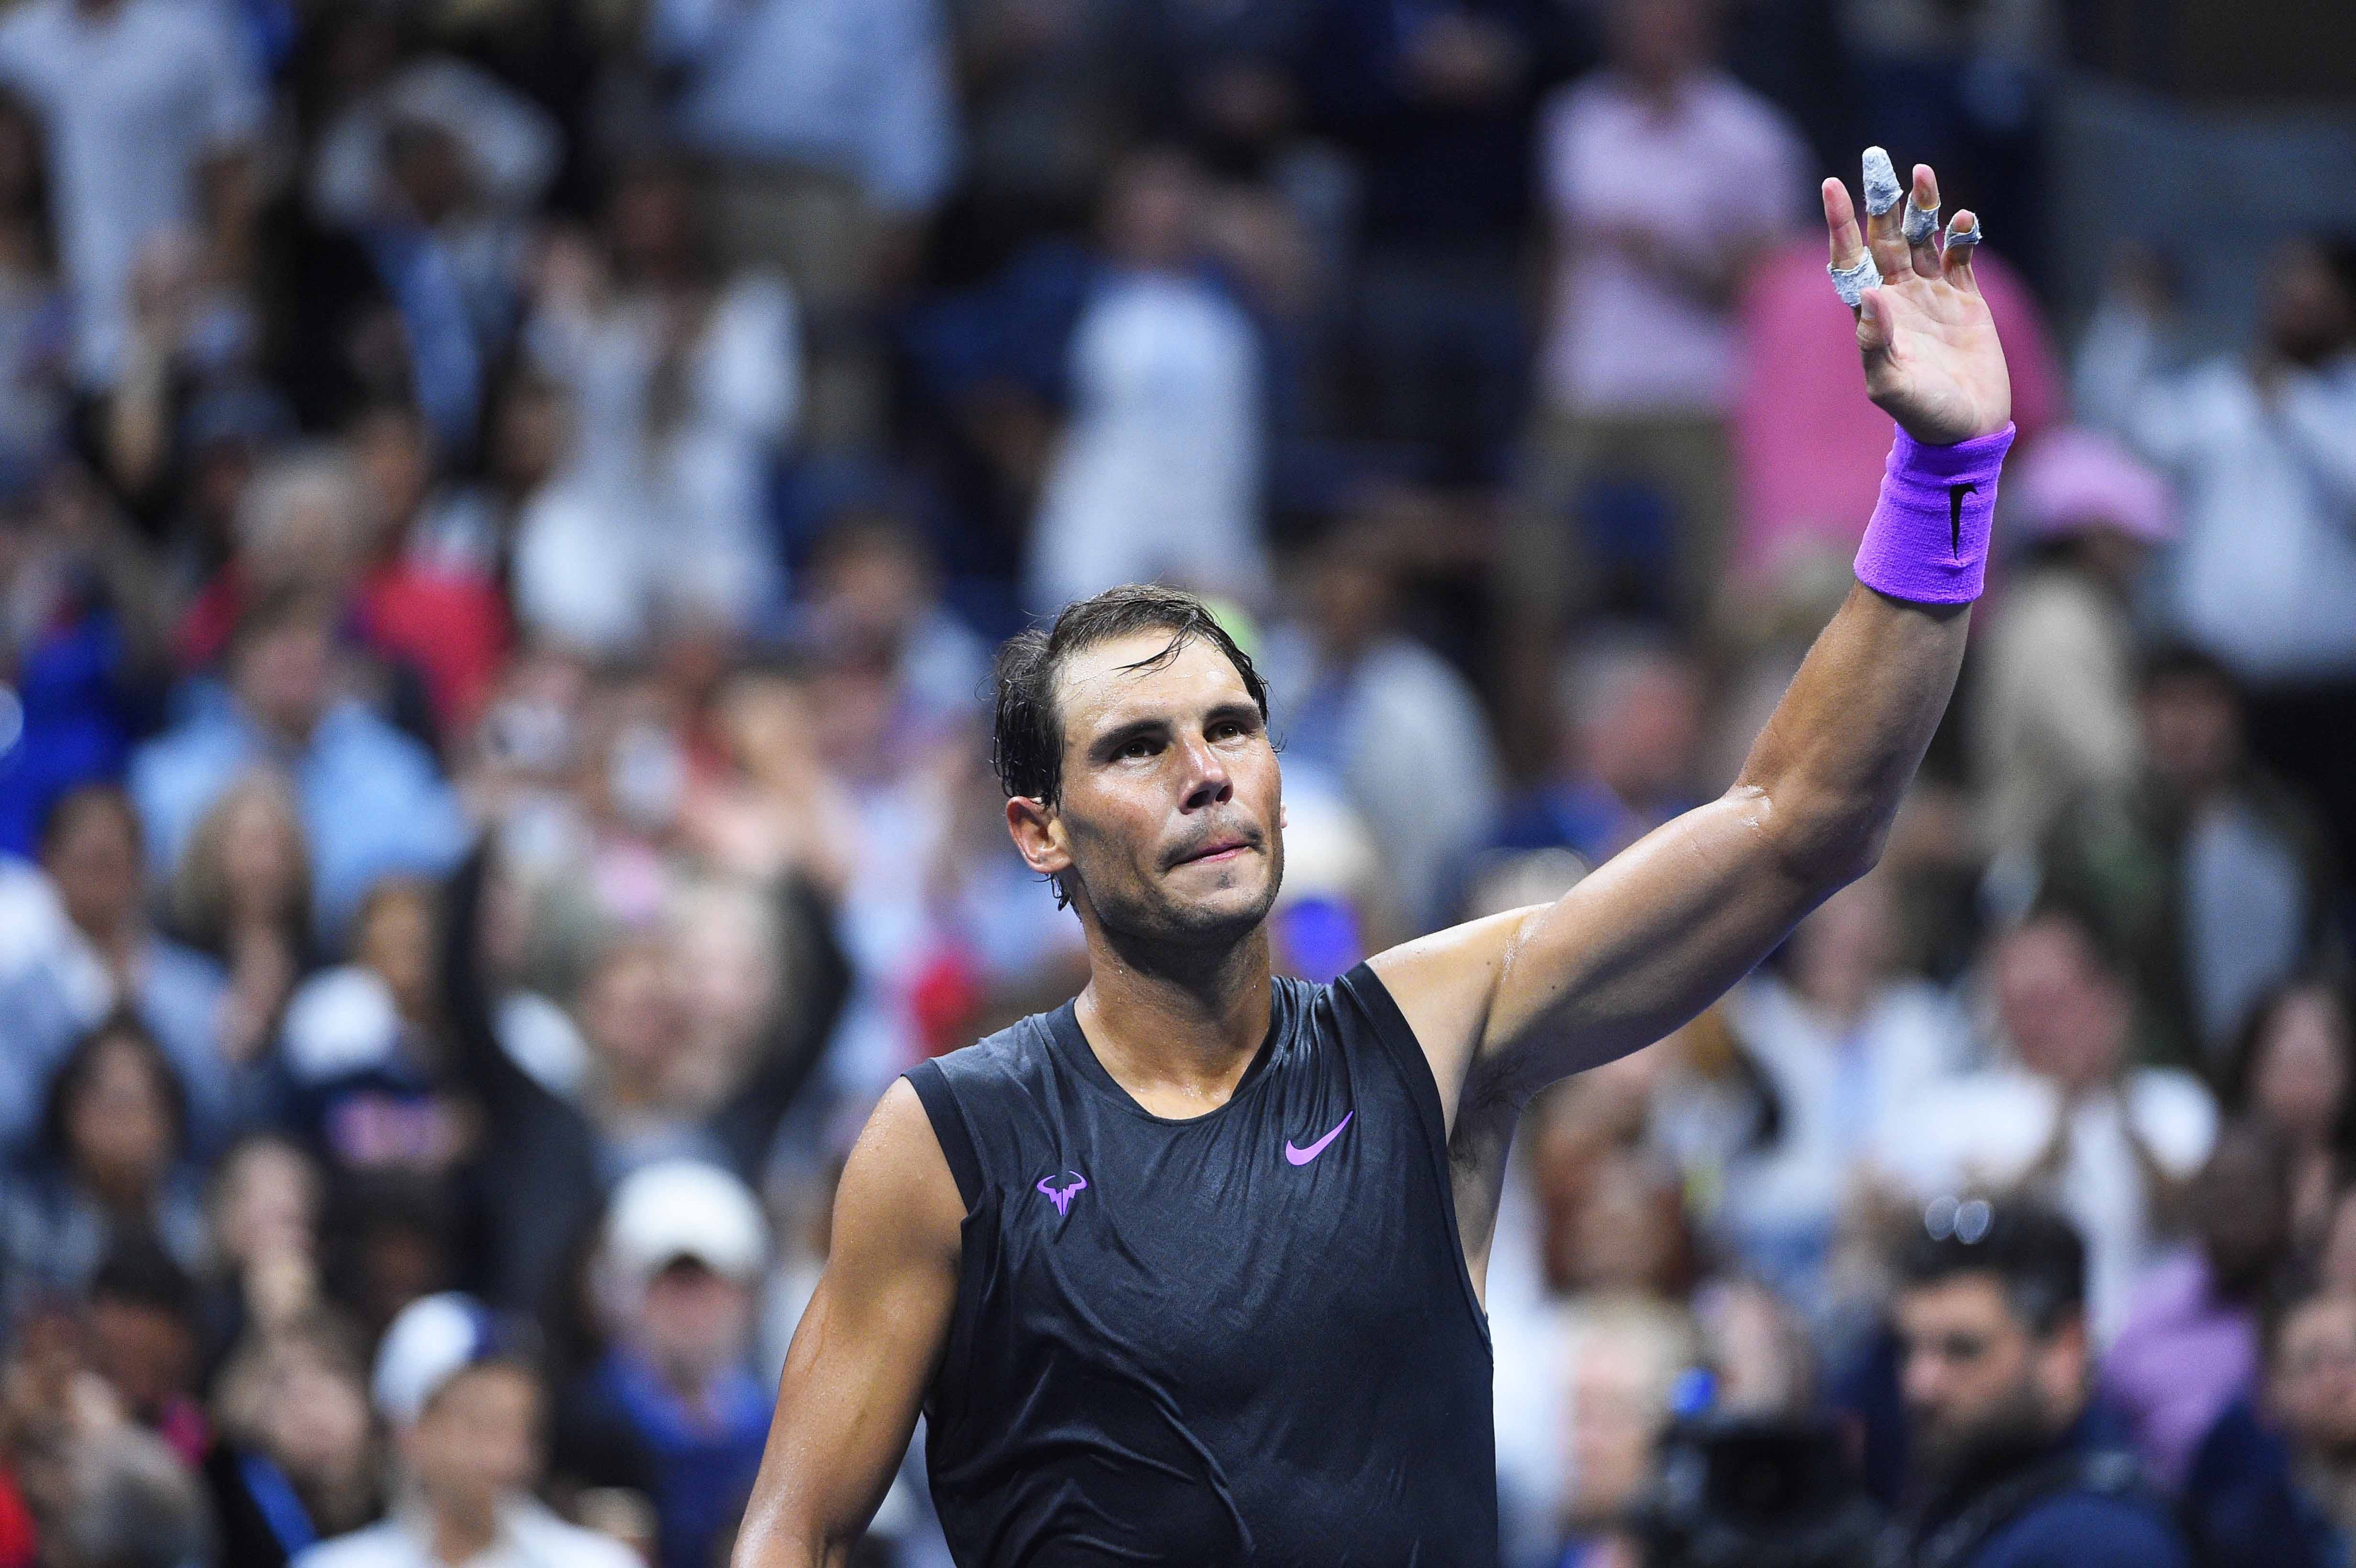 Rafael Nadal wawing to the crowd after his first round match at the 2019 US Open